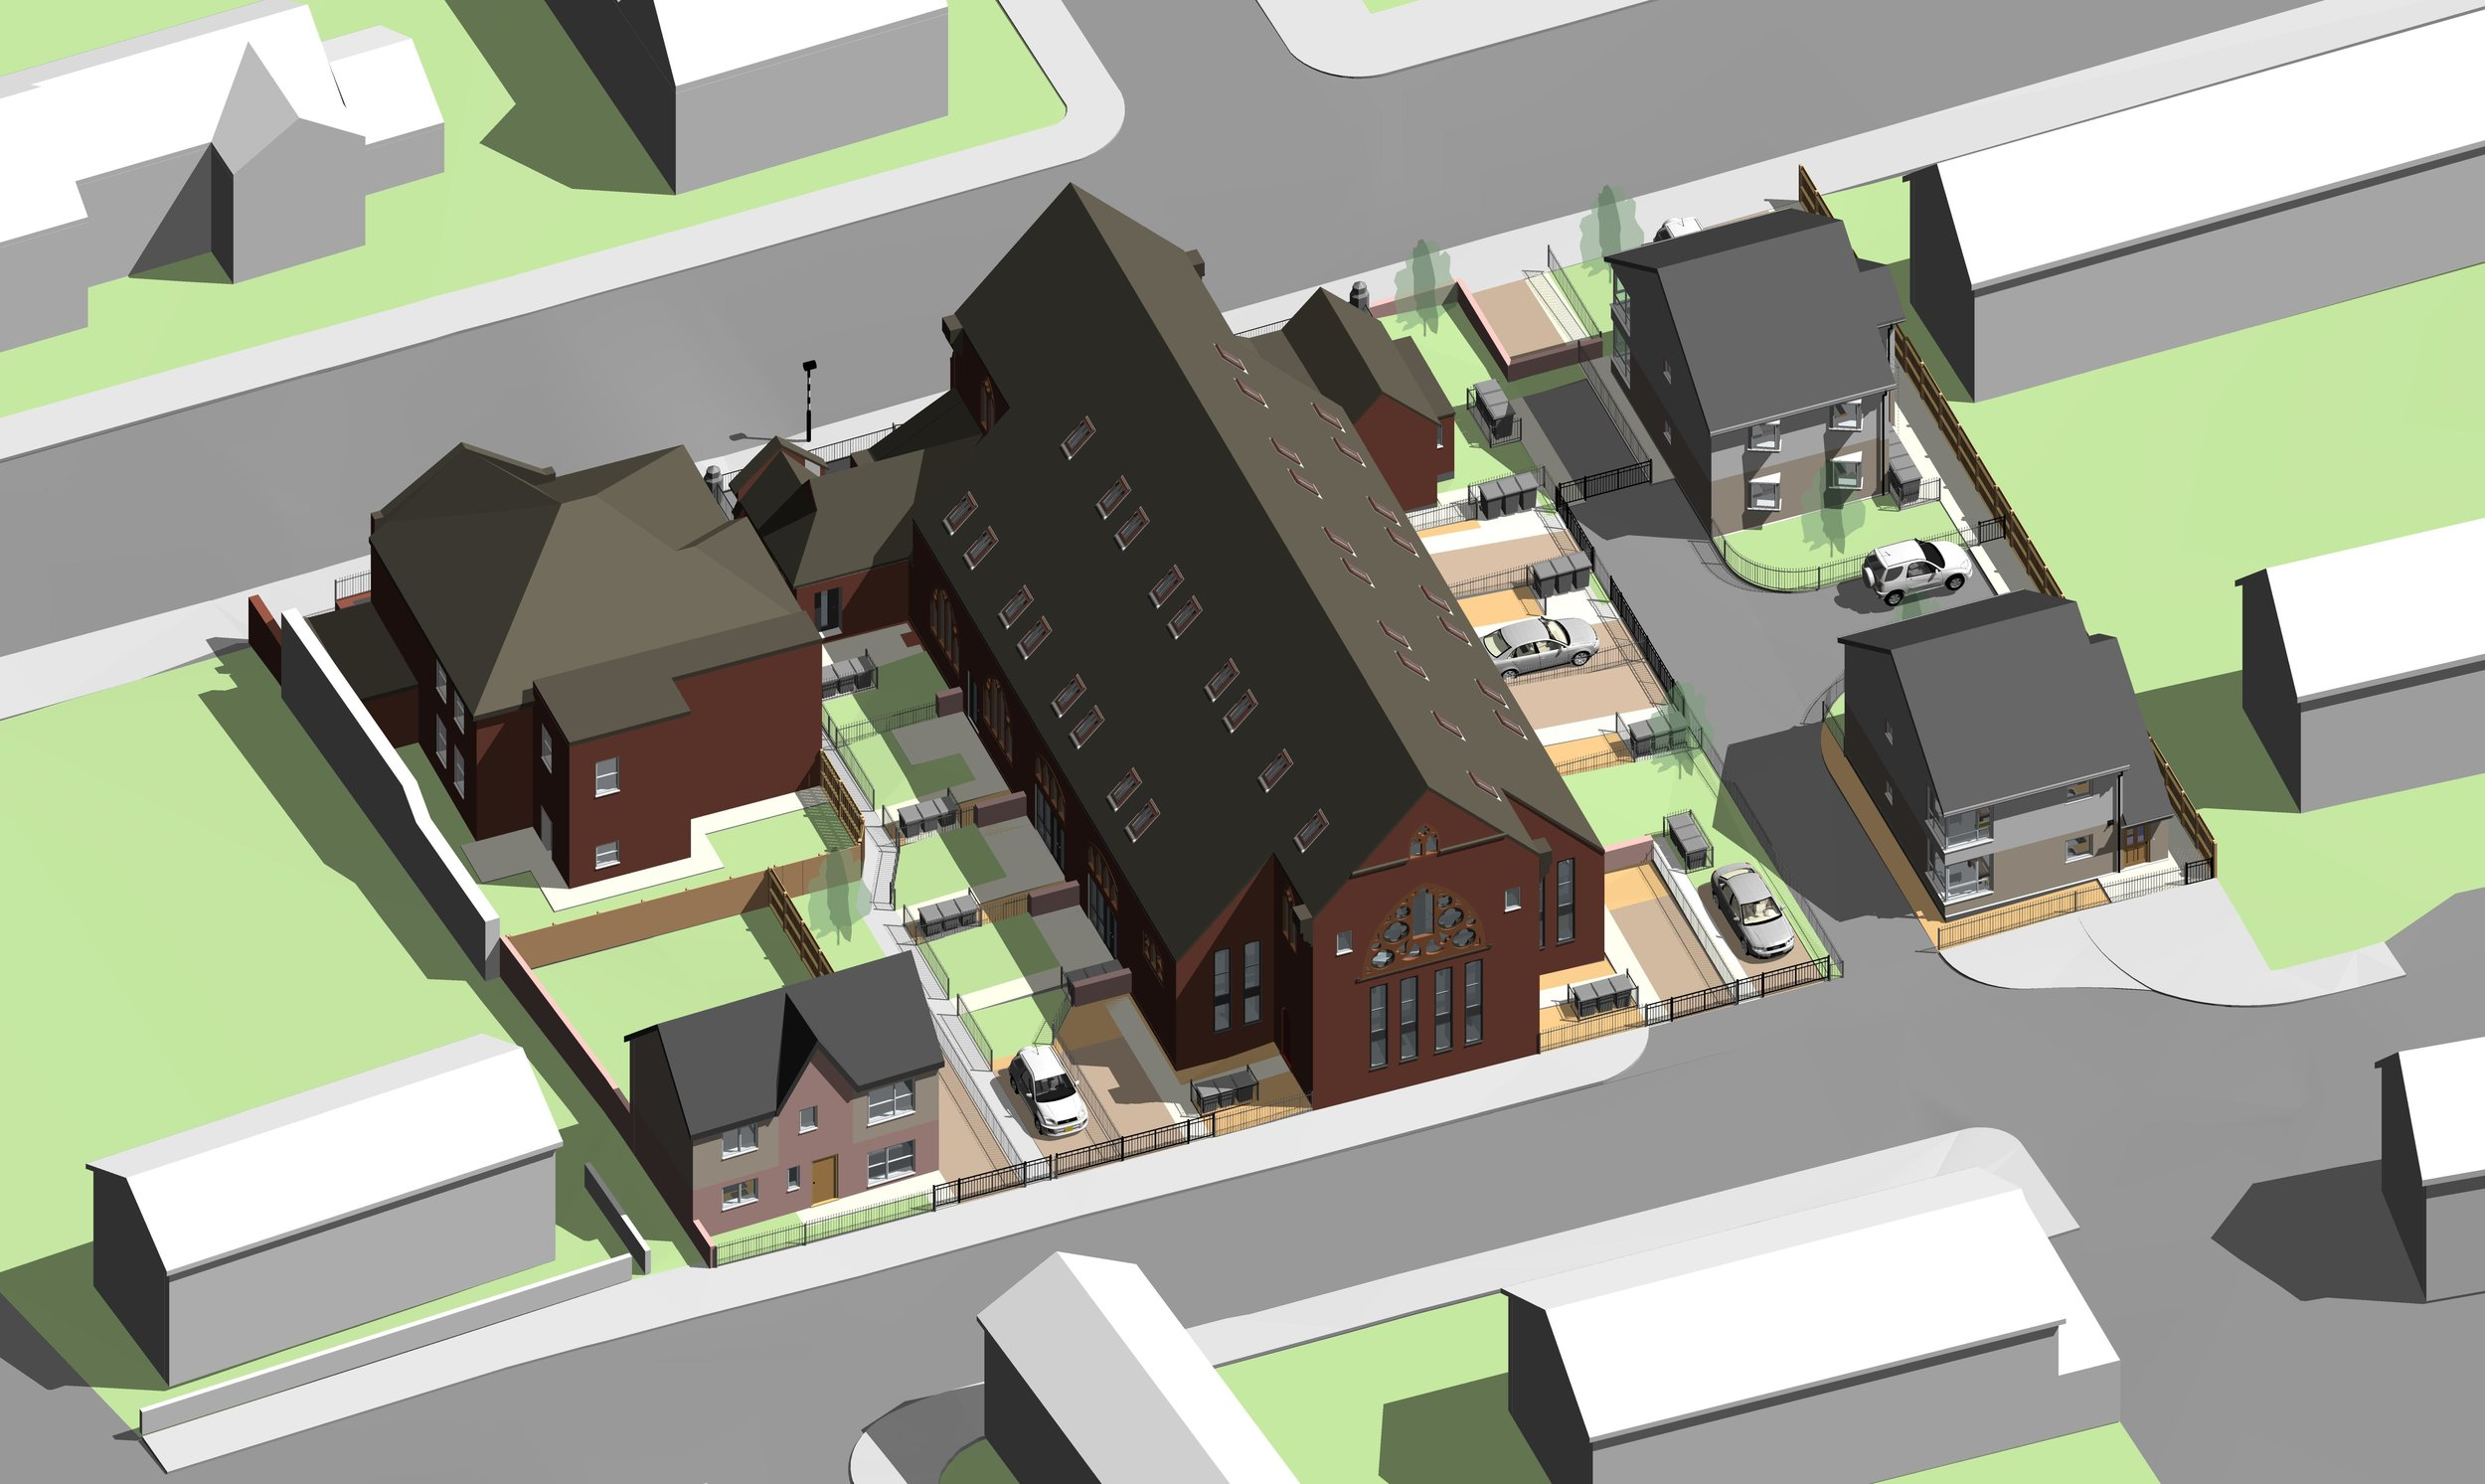 3D digital image of how the new development could look (viewed from Alt Street)